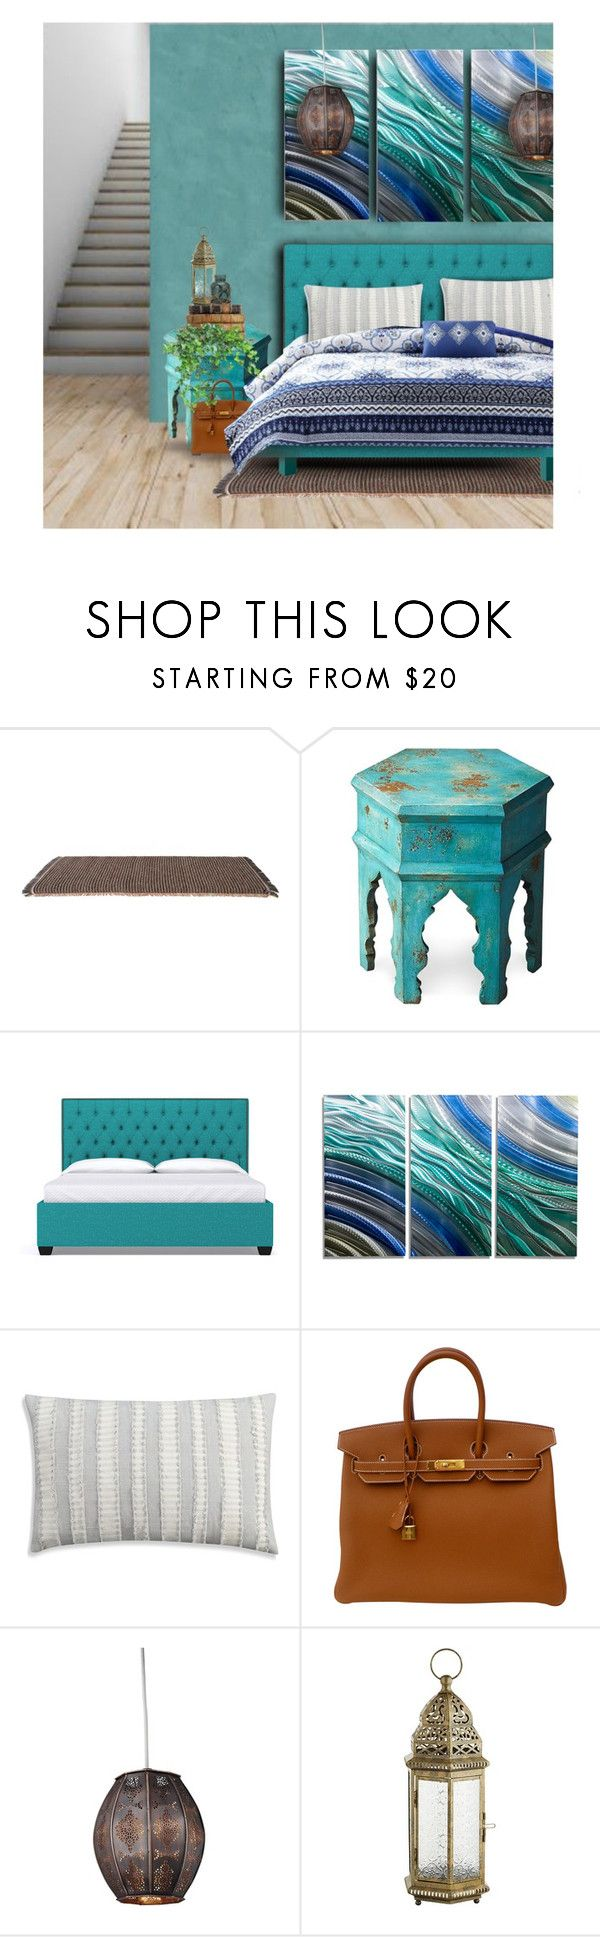 """""""Moroccan Vibe"""" by divine-designer ❤ liked on Polyvore featuring interior, interiors, interior design, home, home decor, interior decorating, Kettal, Butler Specialty Company, cupcakes and cashmere and Hermès"""